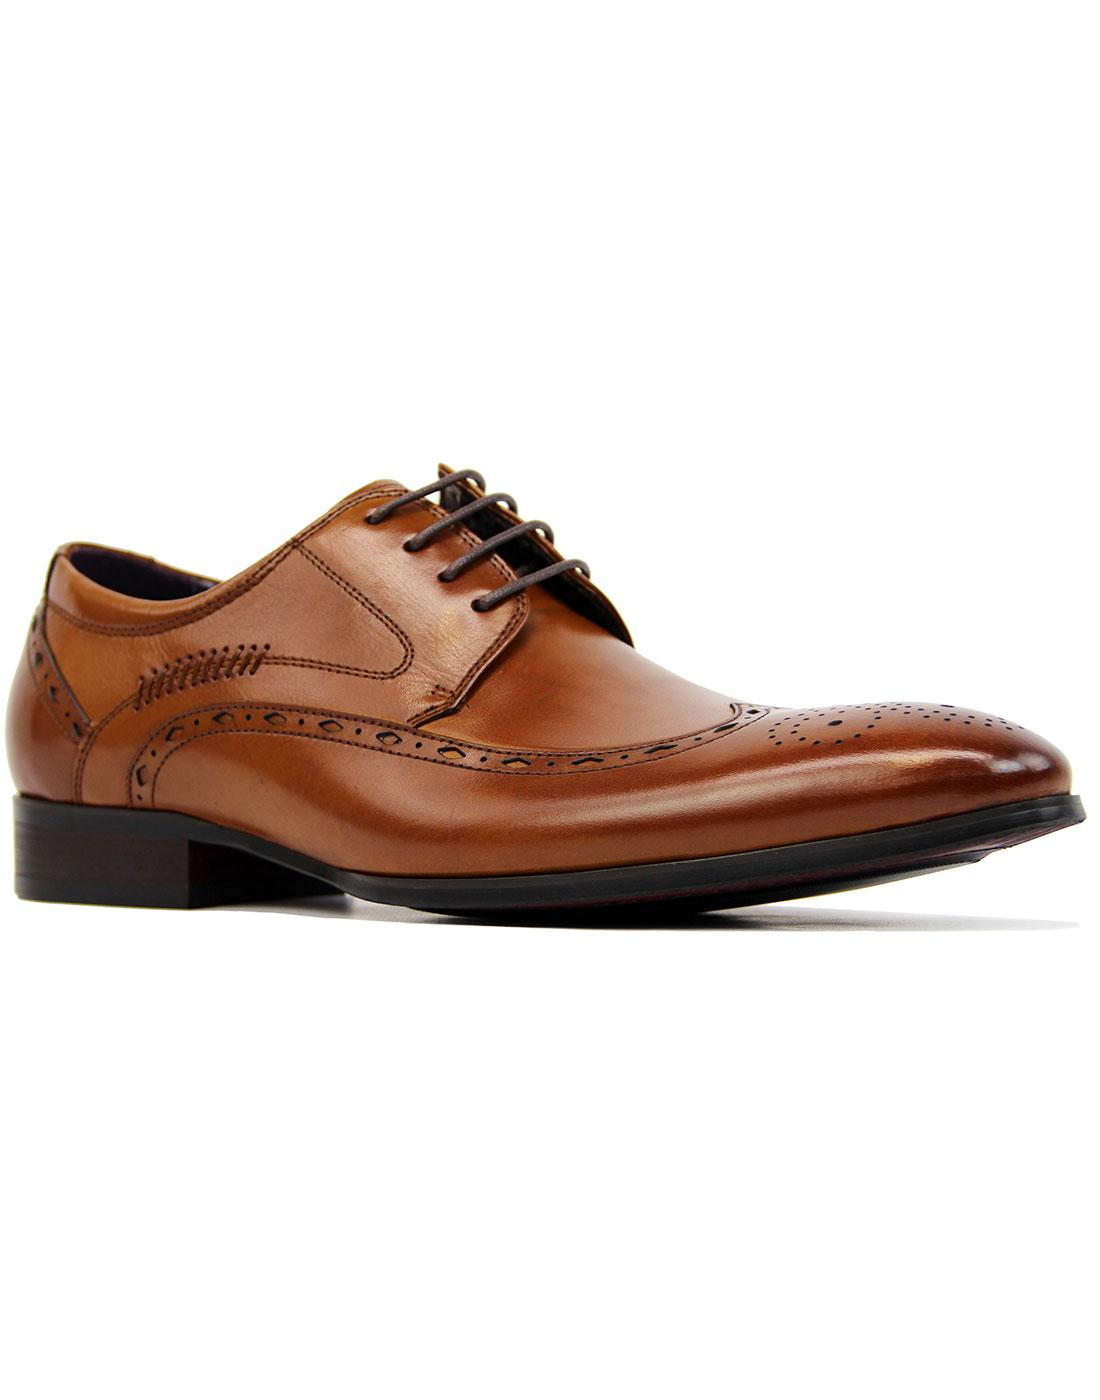 Shane PAOLO VANDINI Retro Mod Wingtip Brogues T